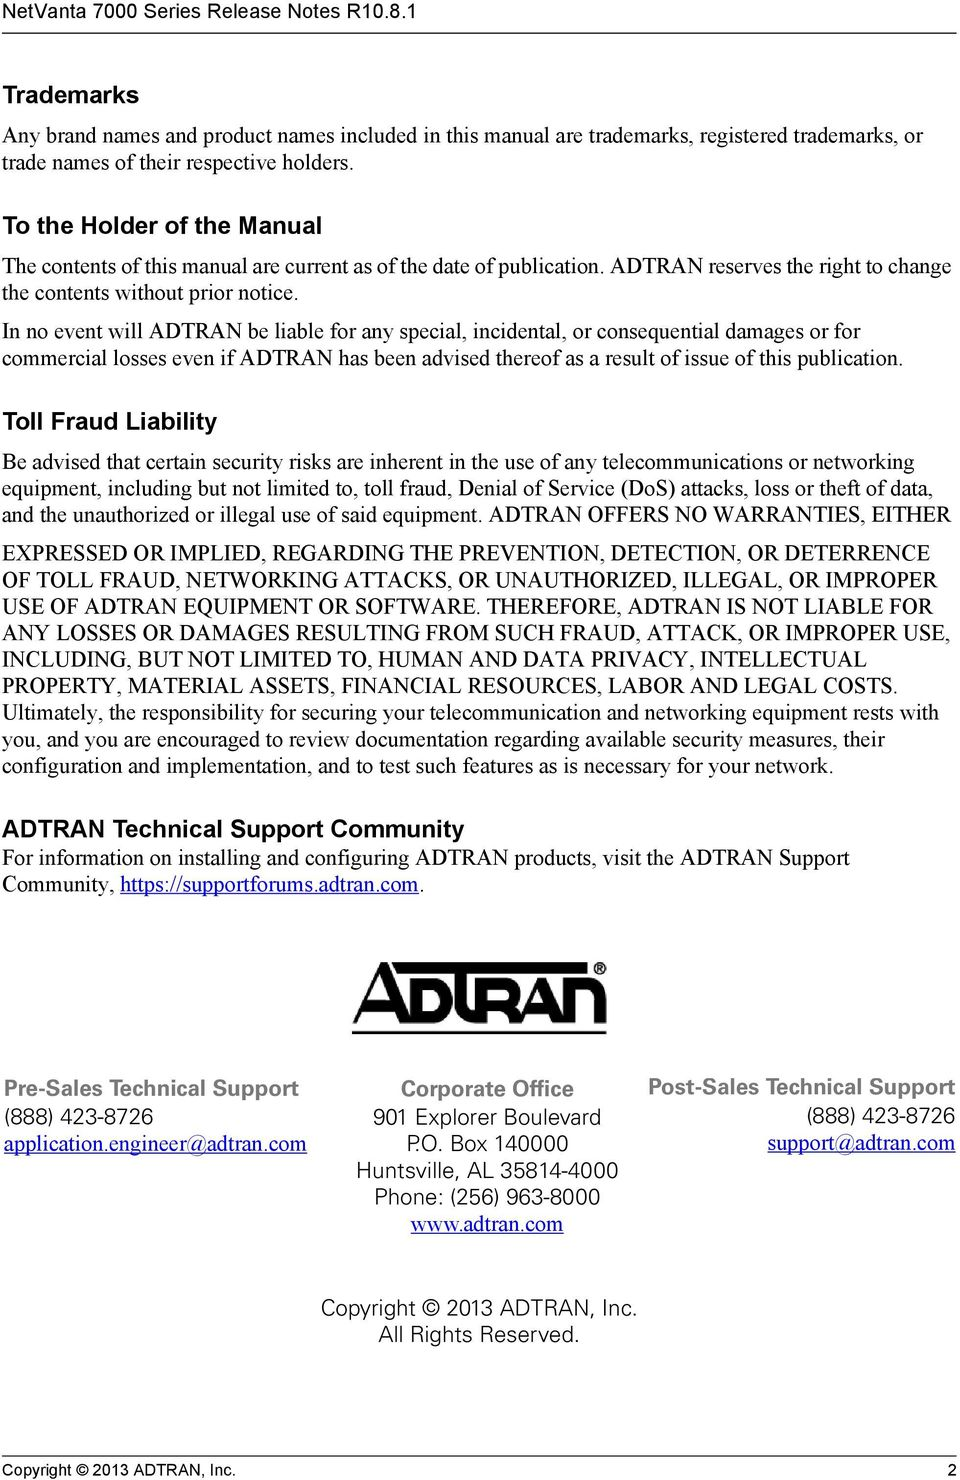 In no event will ADTRAN be liable for any special, incidental, or consequential damages or for commercial losses even if ADTRAN has been advised thereof as a result of issue of this publication.